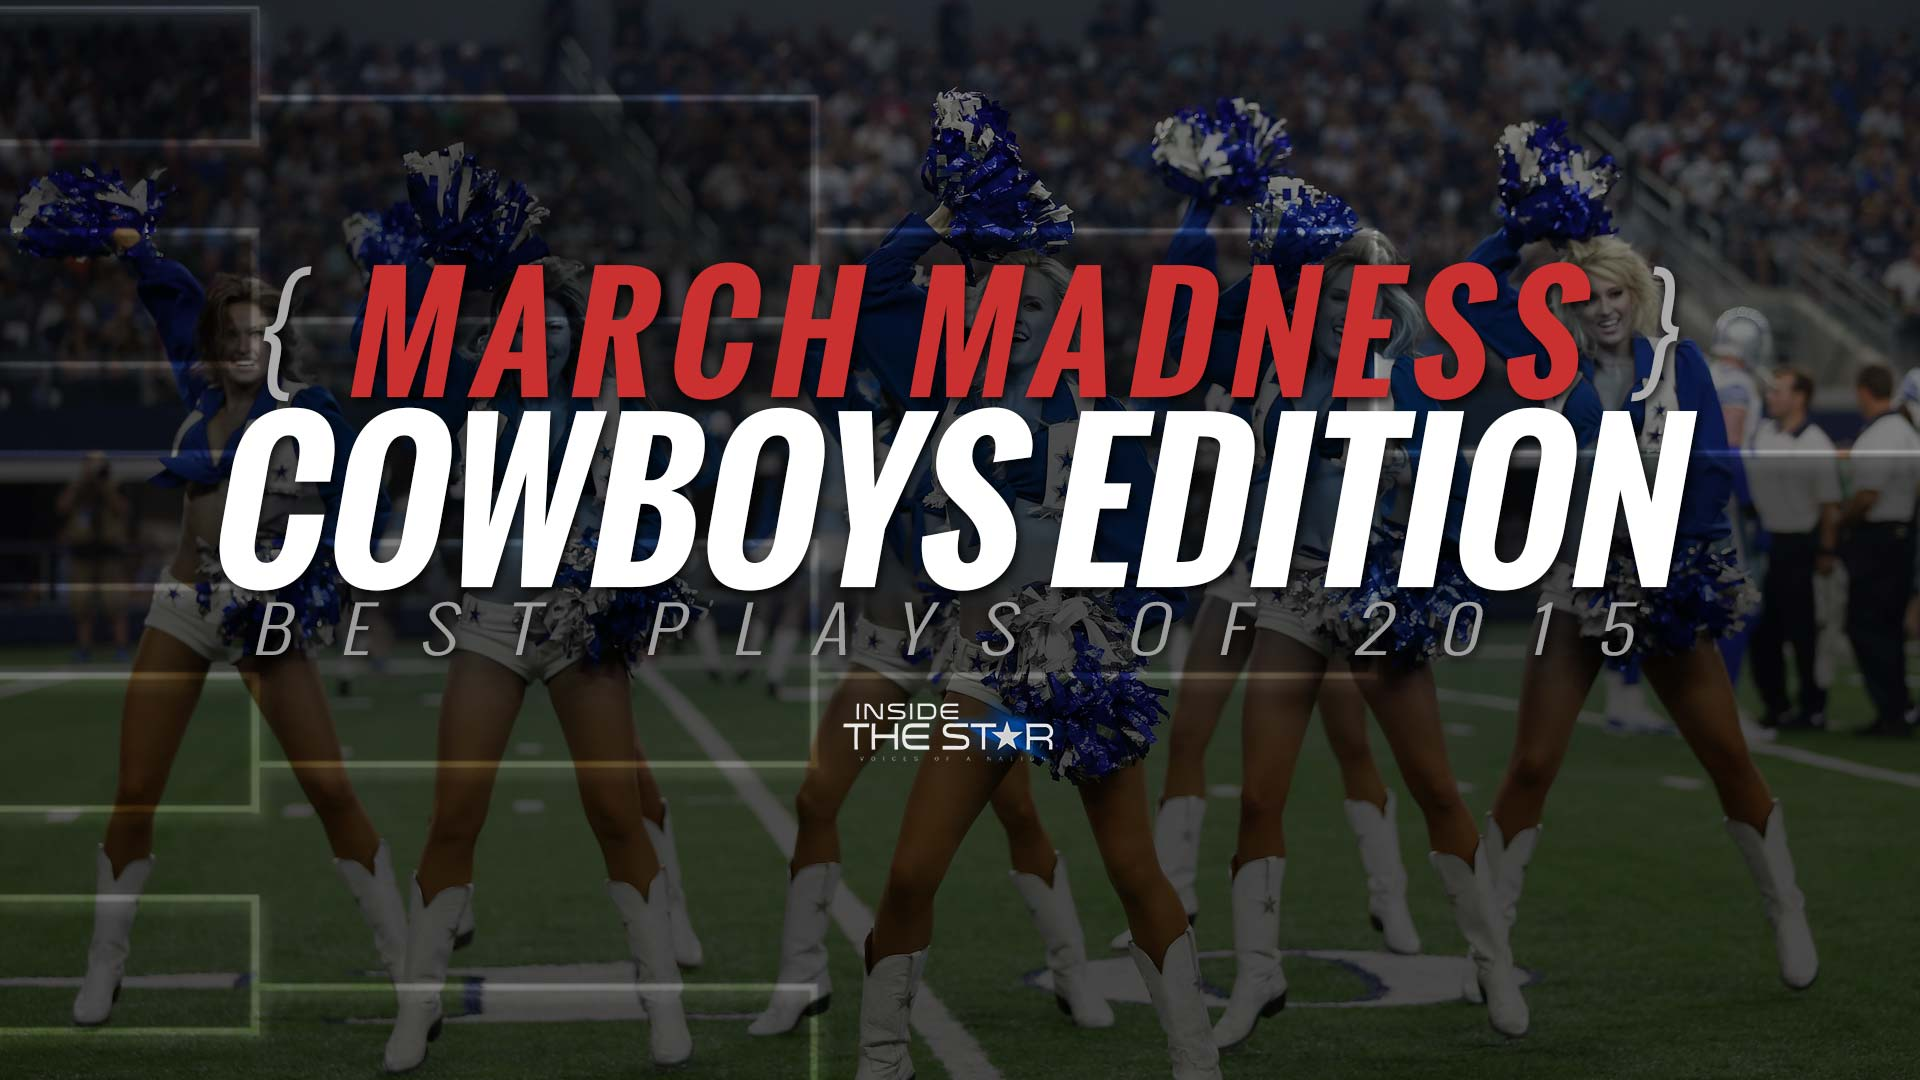 The Star News - March Madness: Cowboys Edition